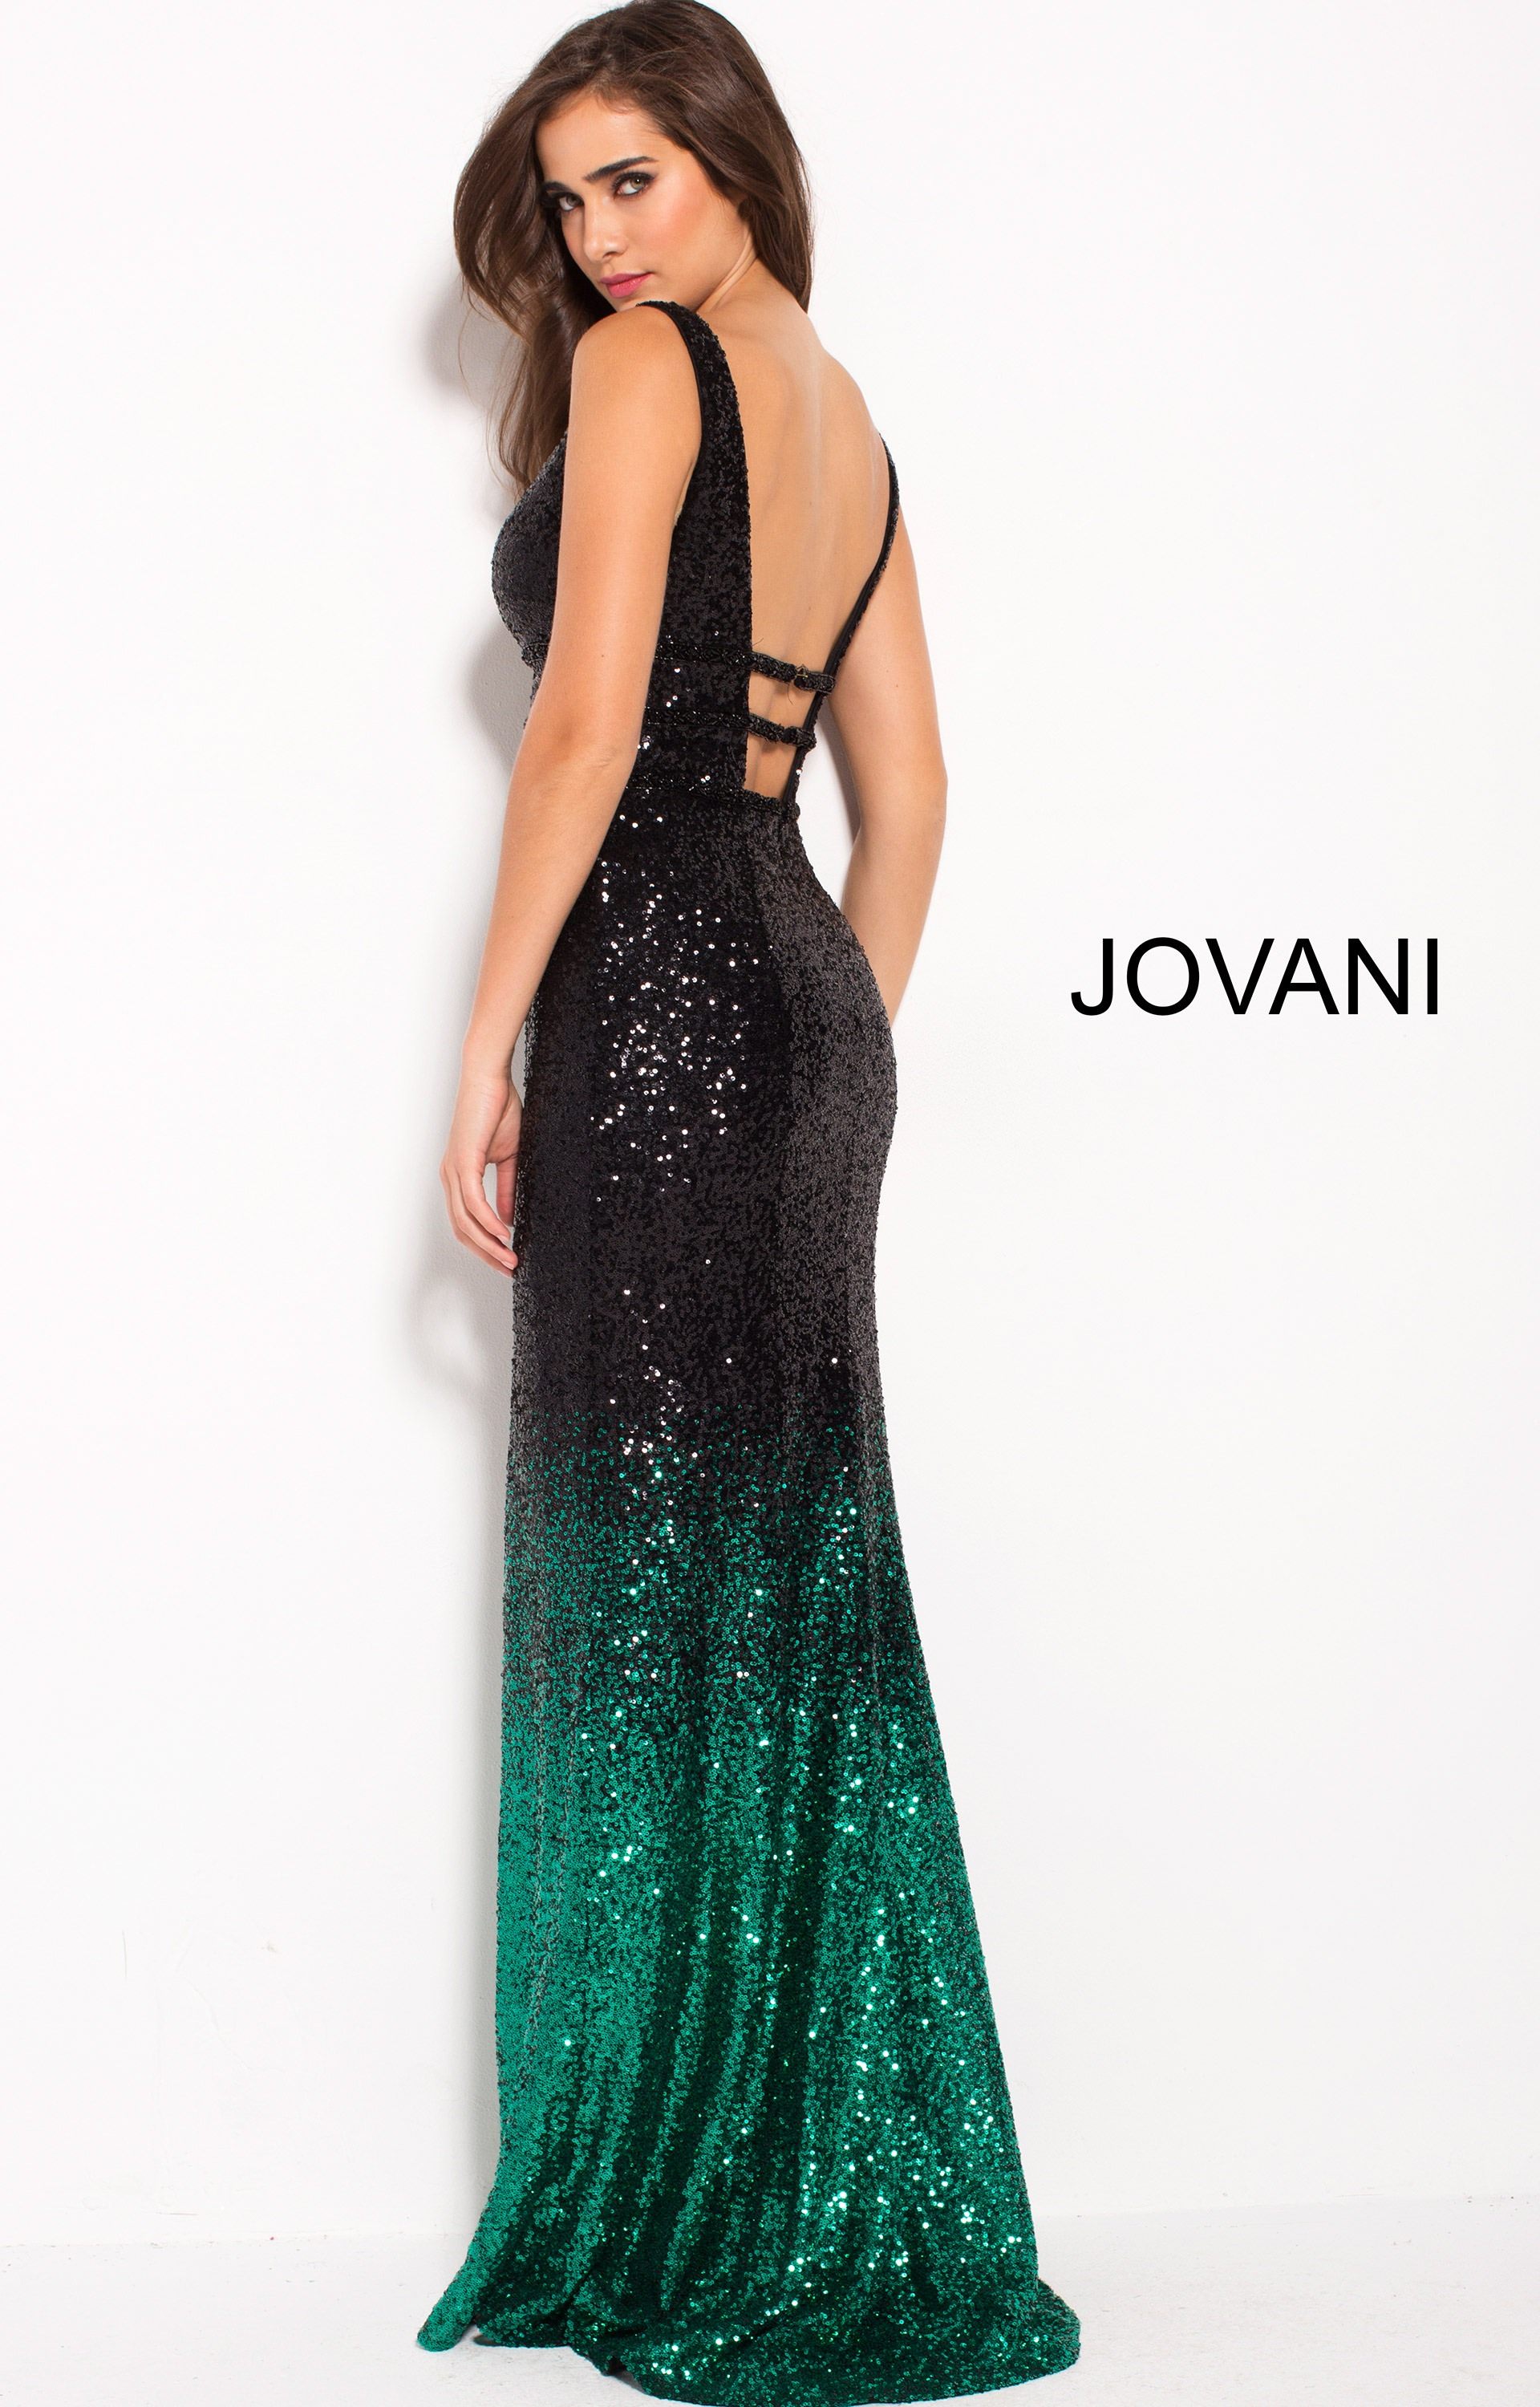 Jovani 56015 Sexy Ombre Sequin Long Evening Dress Prom Dress